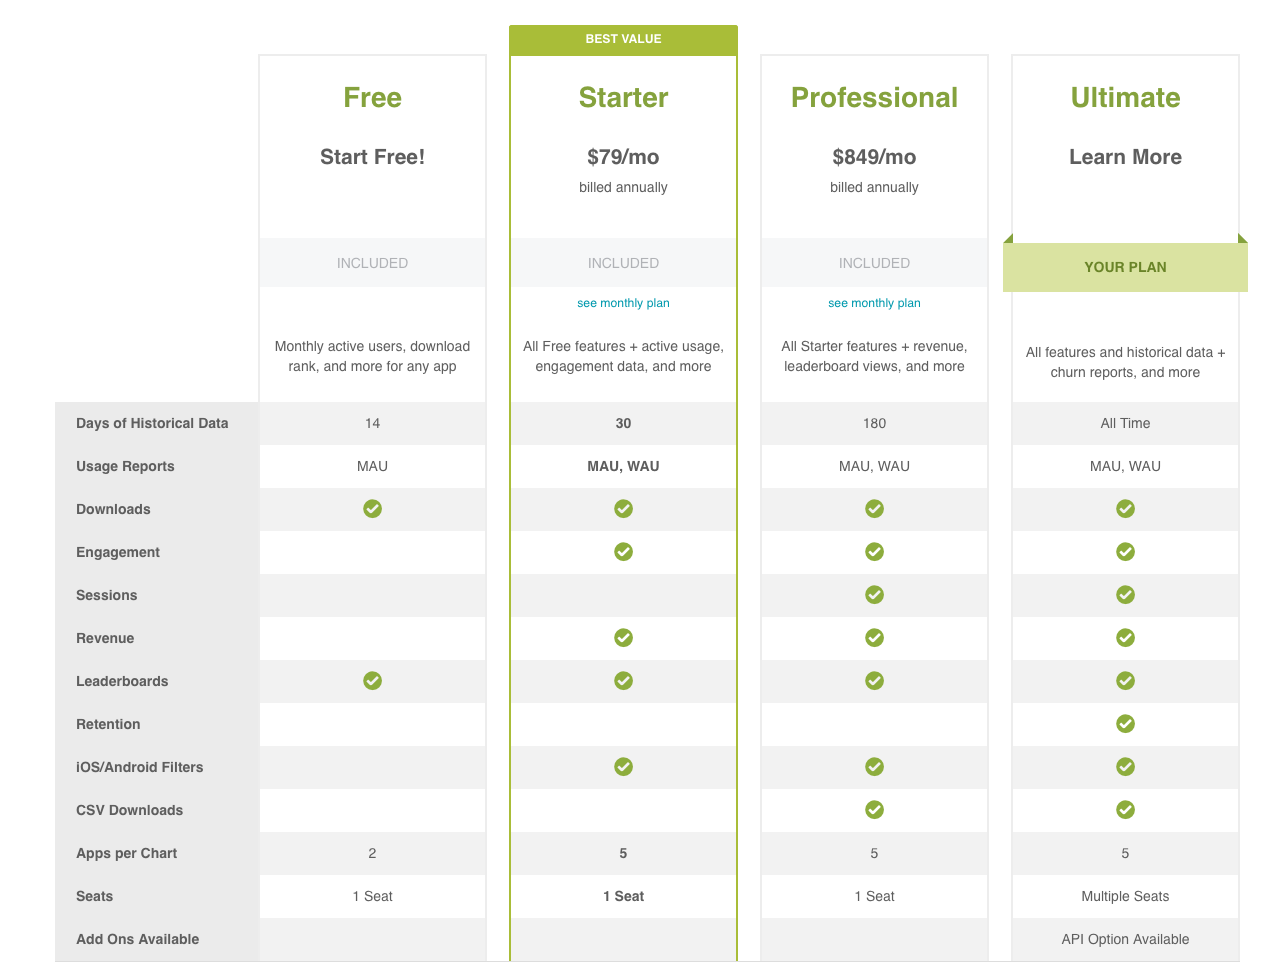 SurveyMonkey Intelligence pricing